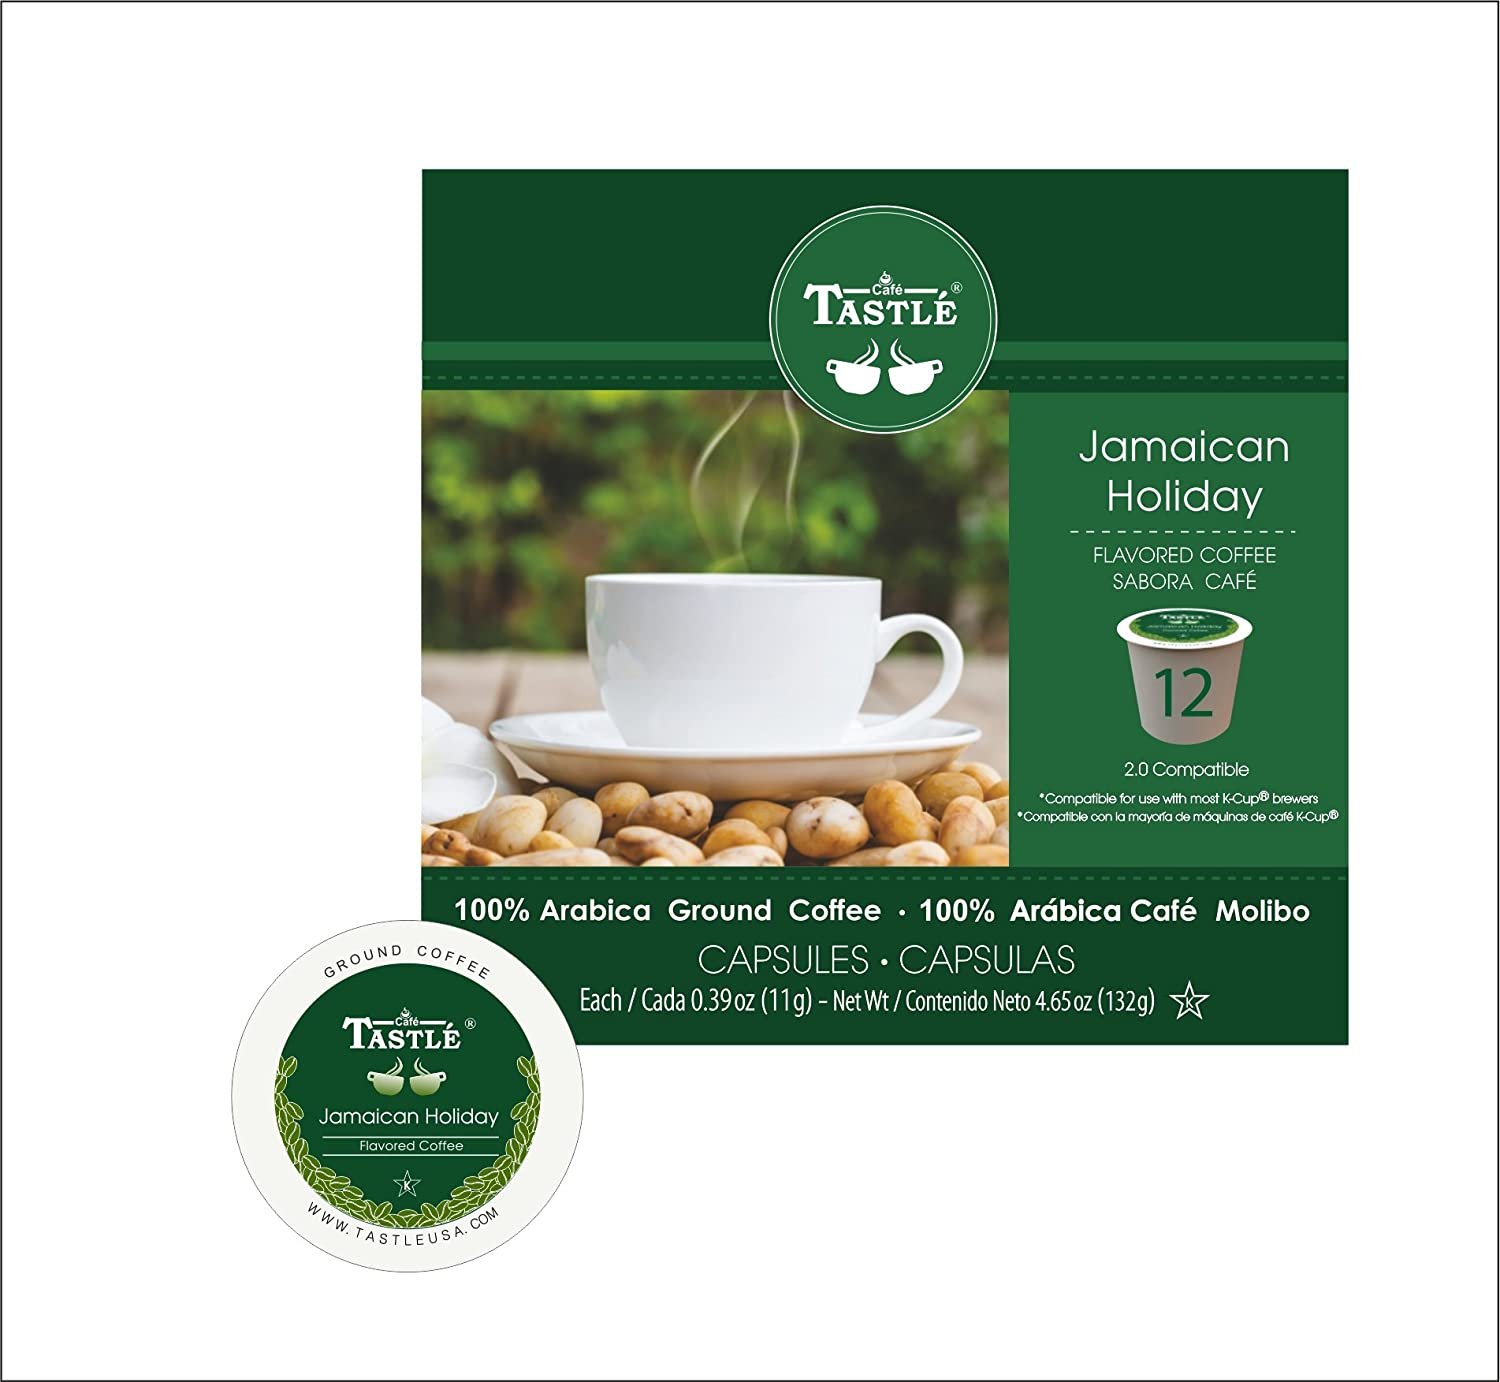 Amazon.com : Cafe Tastlé Jamaican Holiday Single Serve Coffee, 72 Count (Pack of 6) : Grocery & Gourmet Food